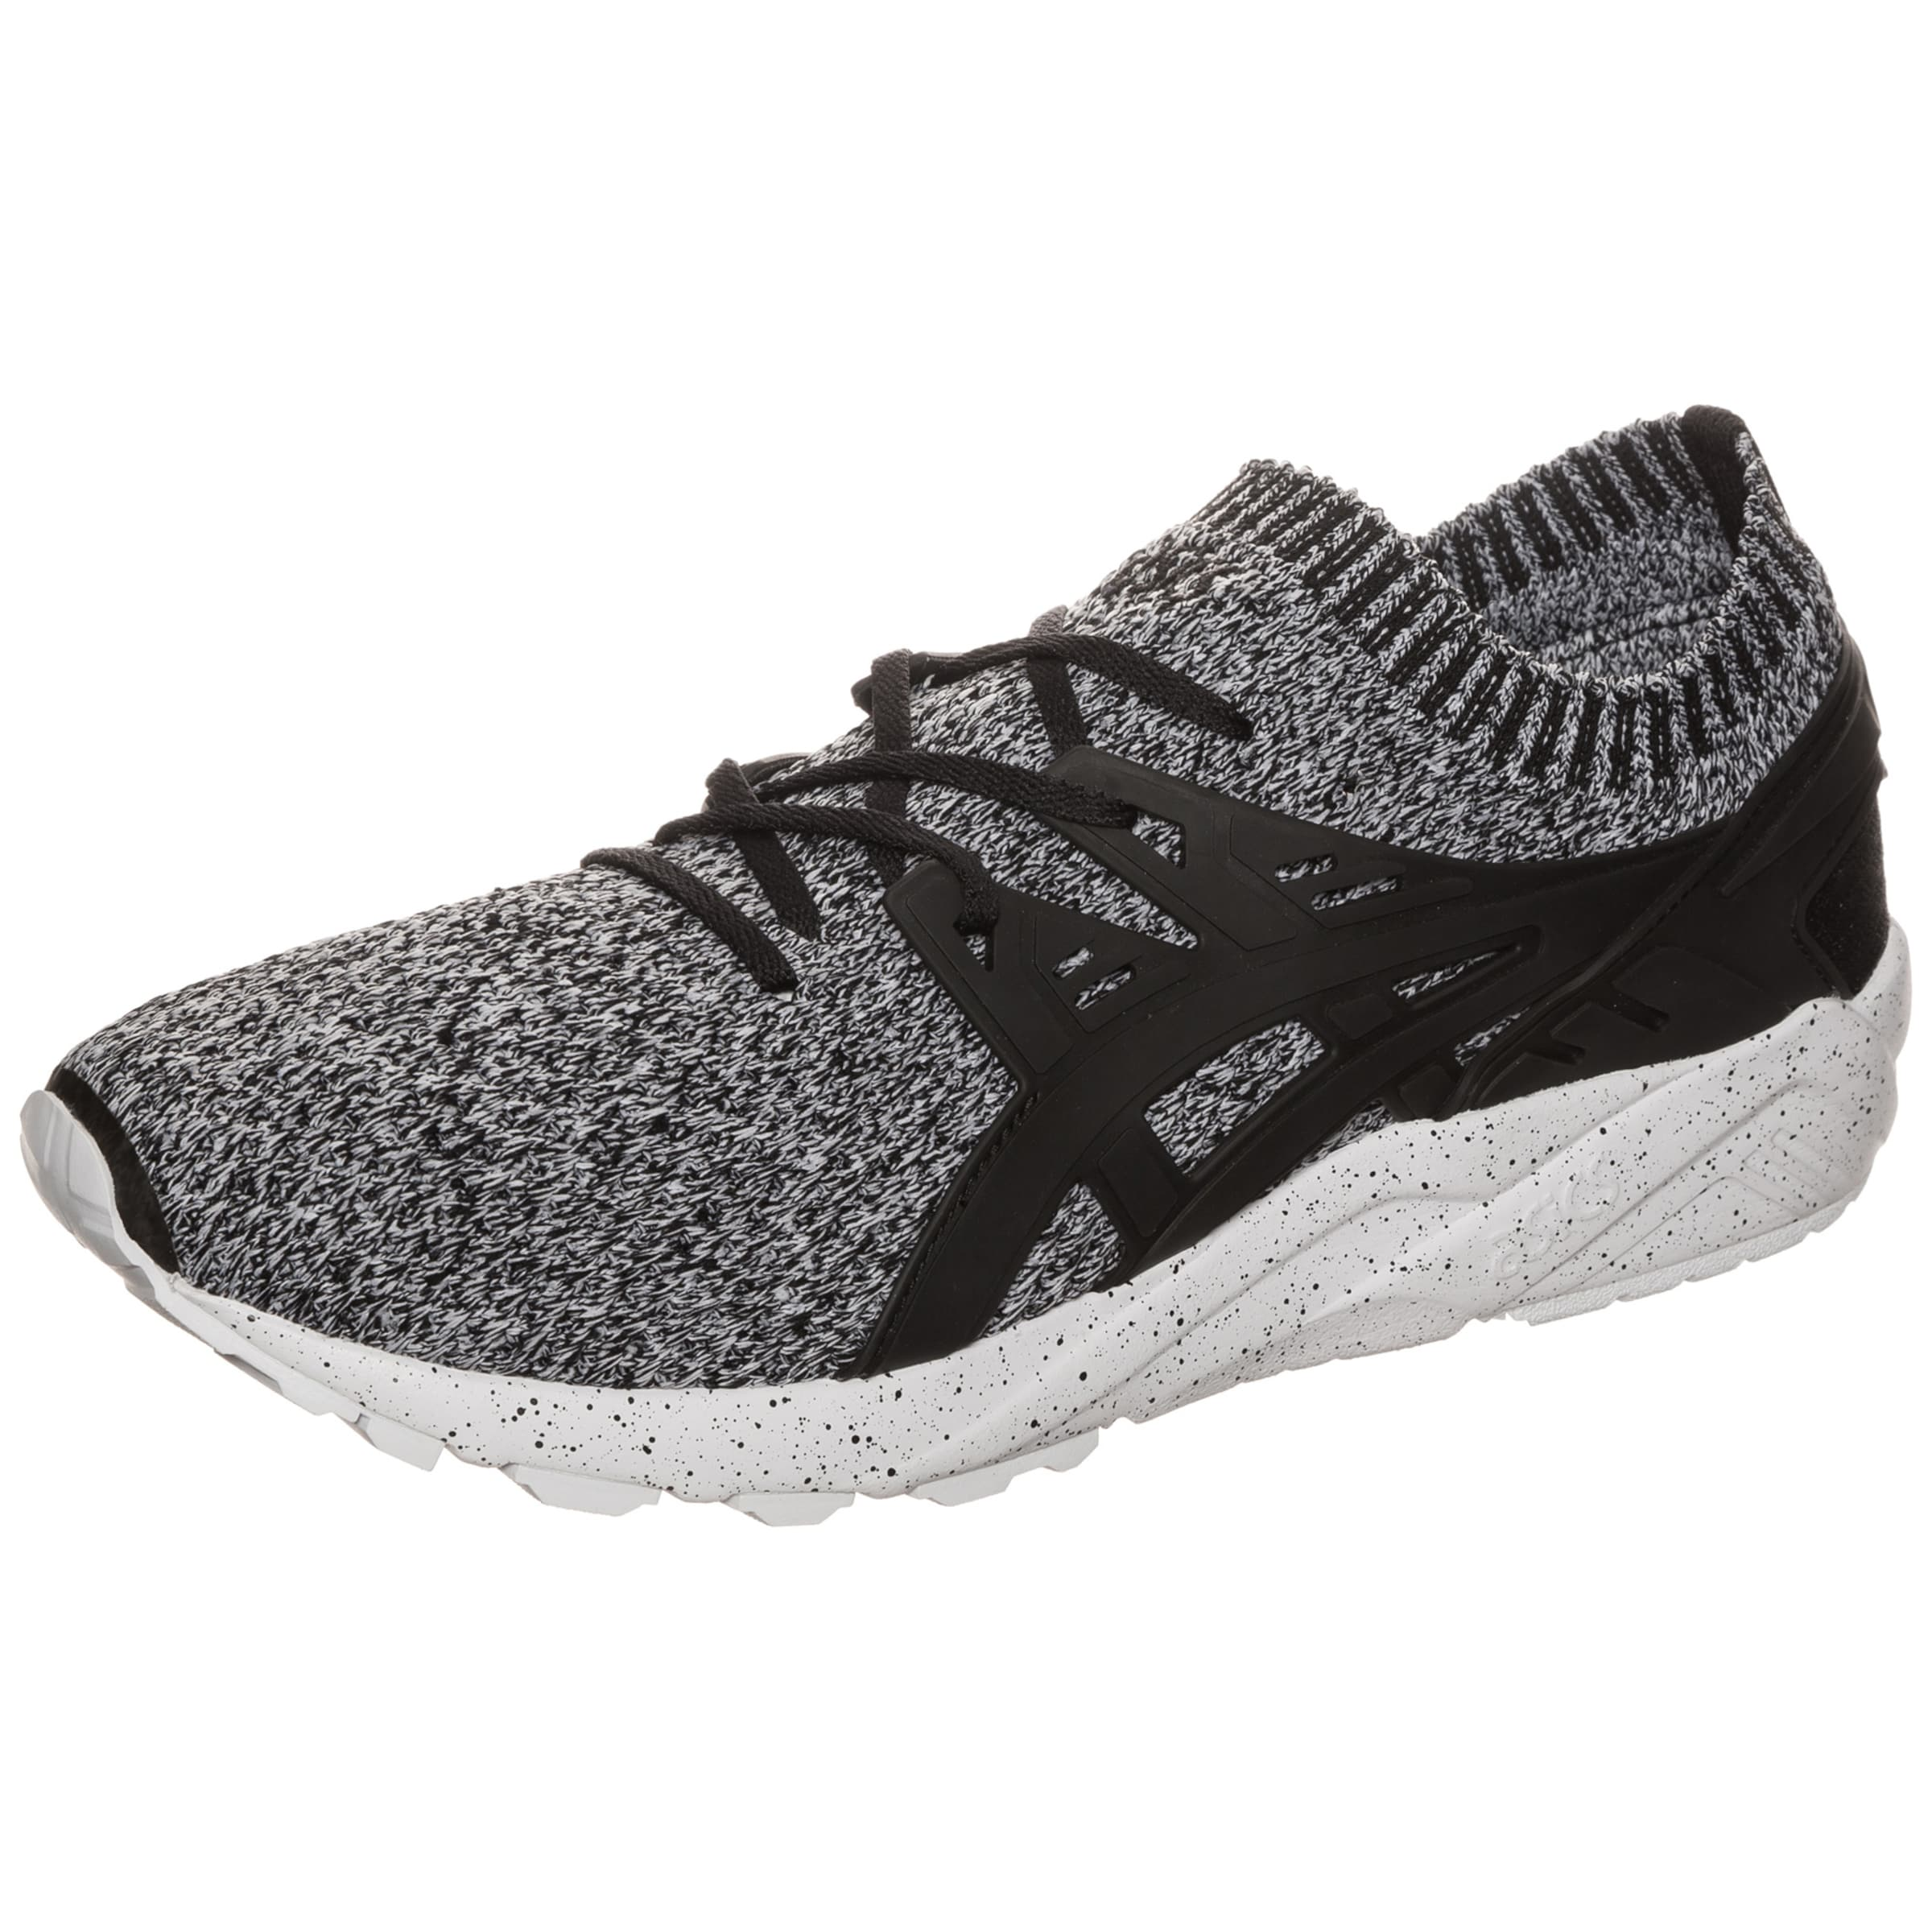 Asics Tiger Knit | Turnschuhe Gel-Kayano Trainer Knit Tiger 4317bf